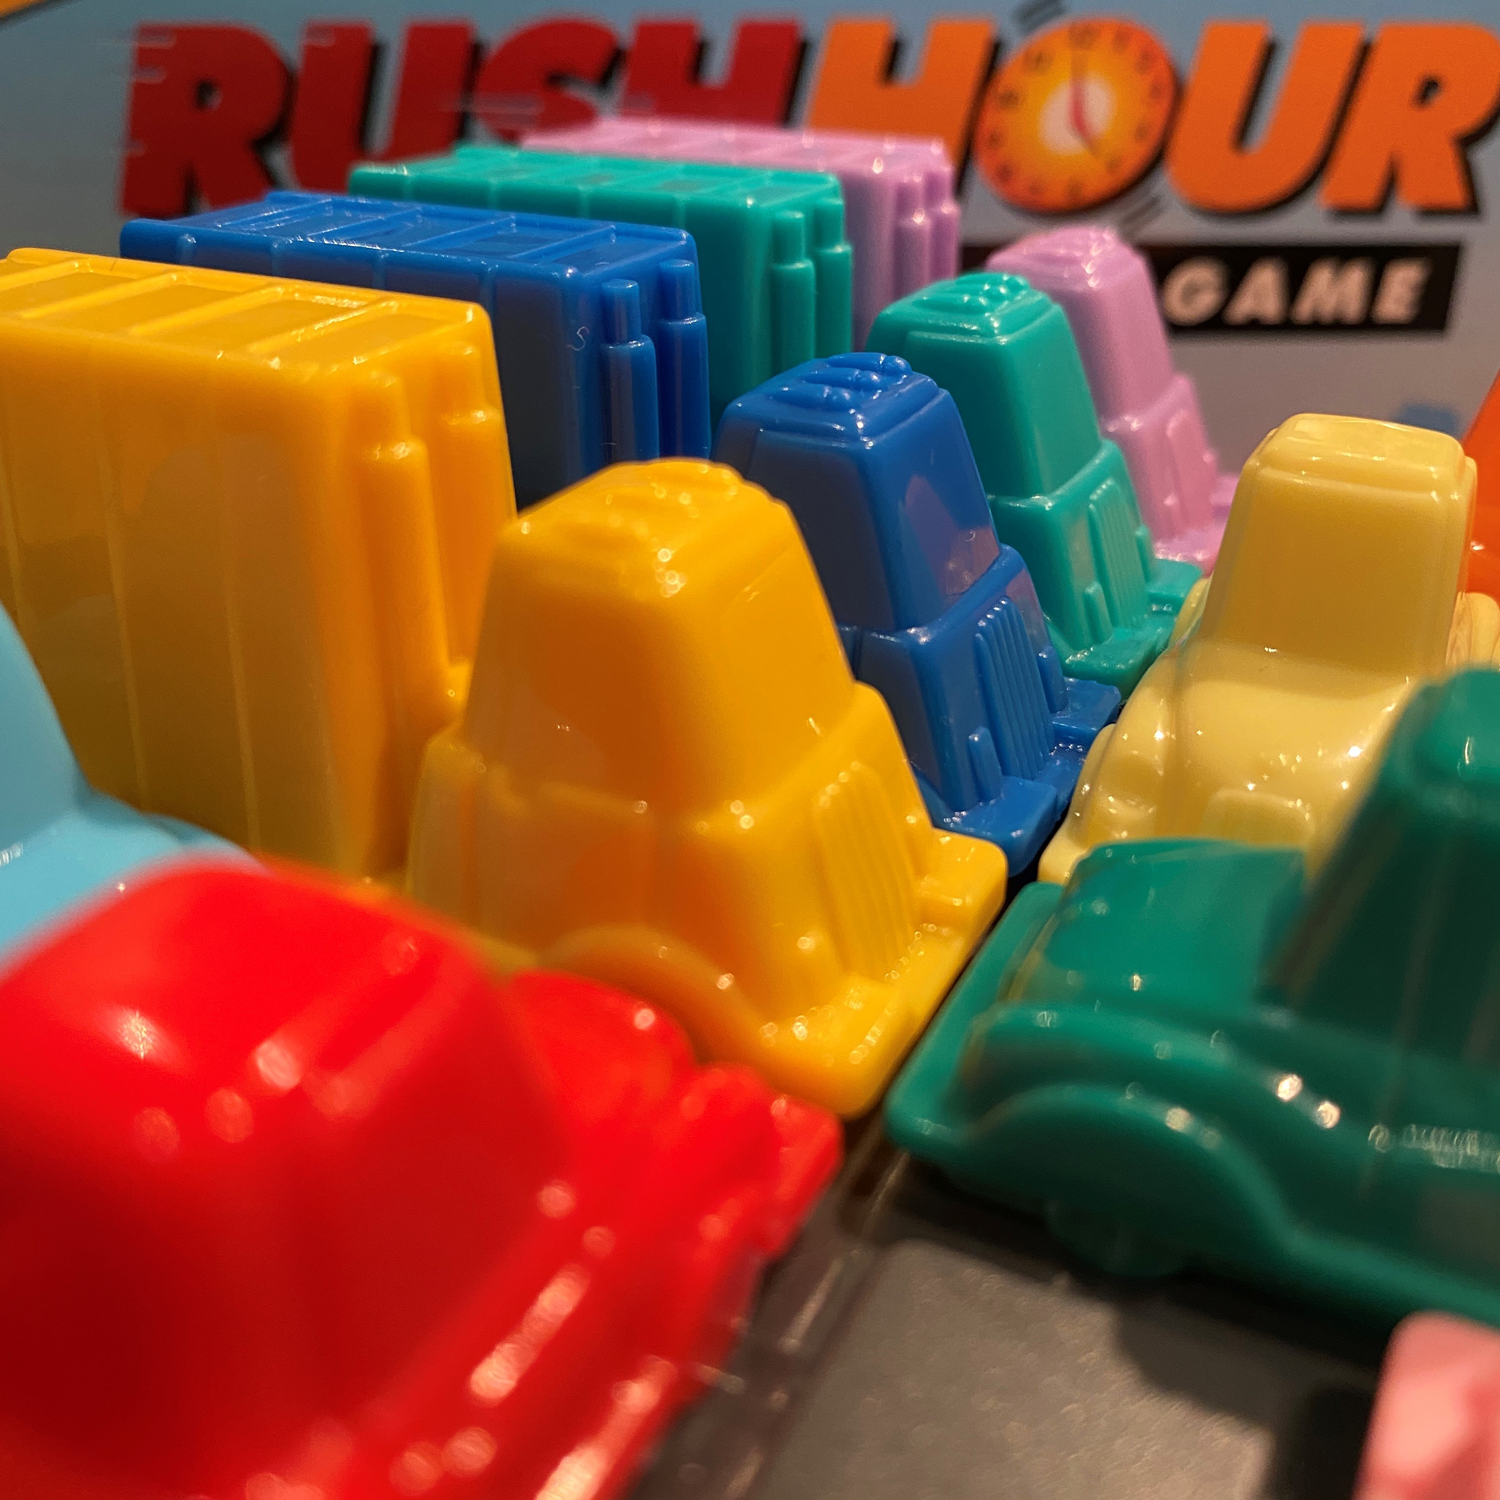 Rush-Hour-Puzzle-Game-detail